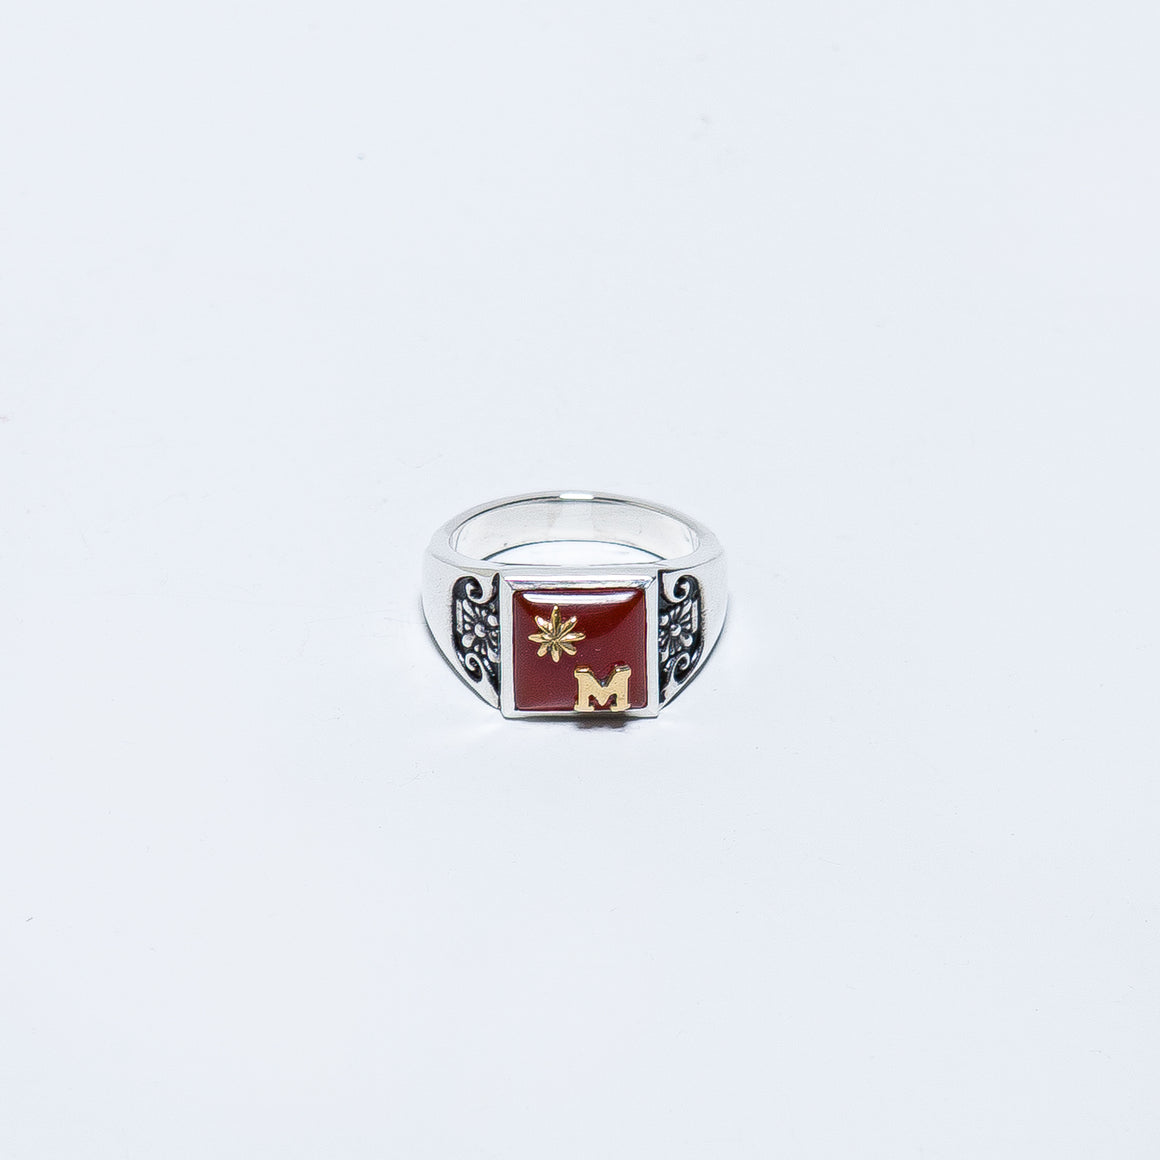 Maple - Collegiate Ring - Silver 925/Red Garnet/Gold - Up There